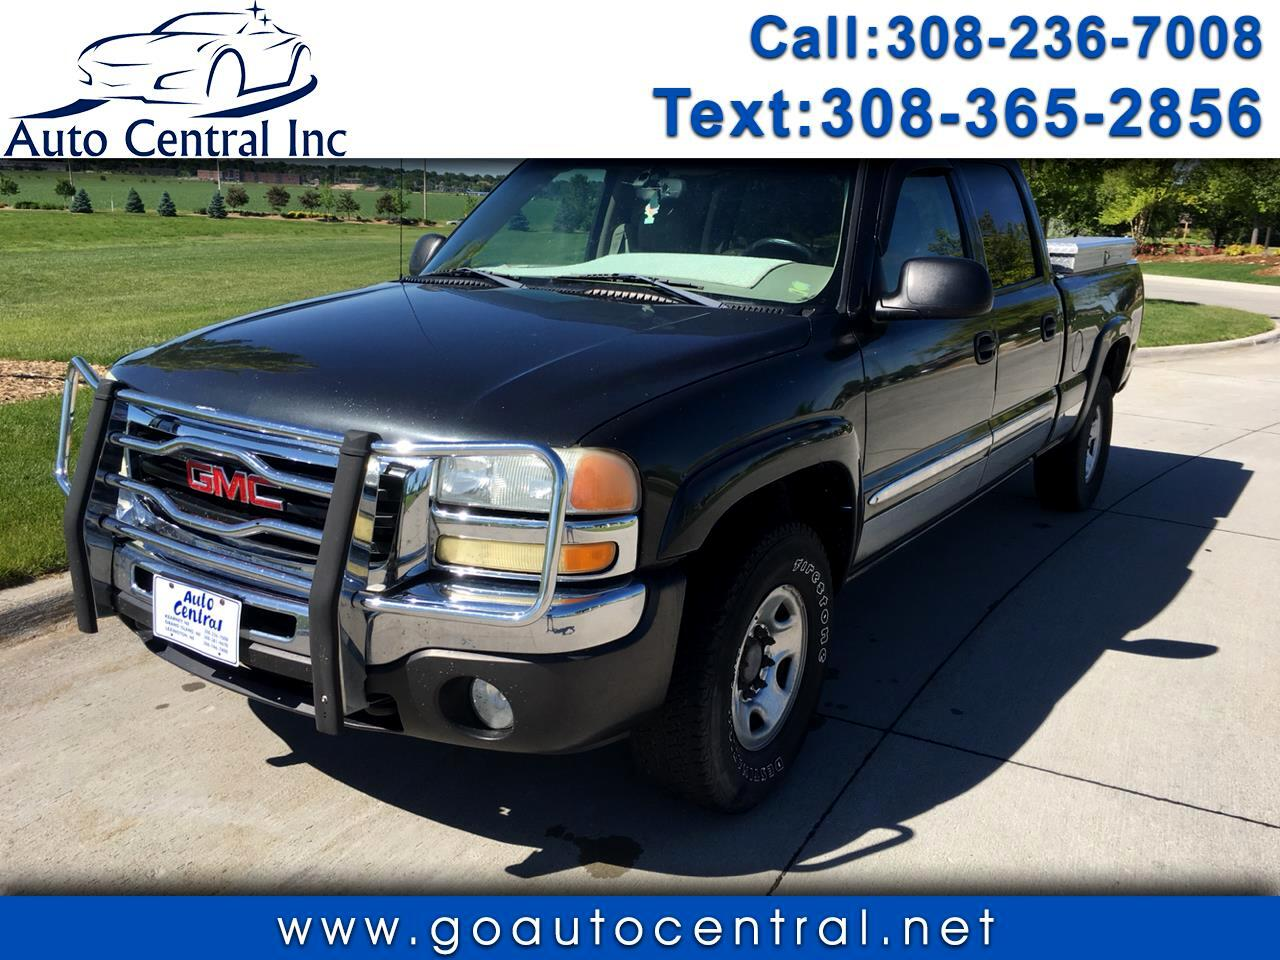 2003 GMC 1500 Pickups Club Coupe 141.5